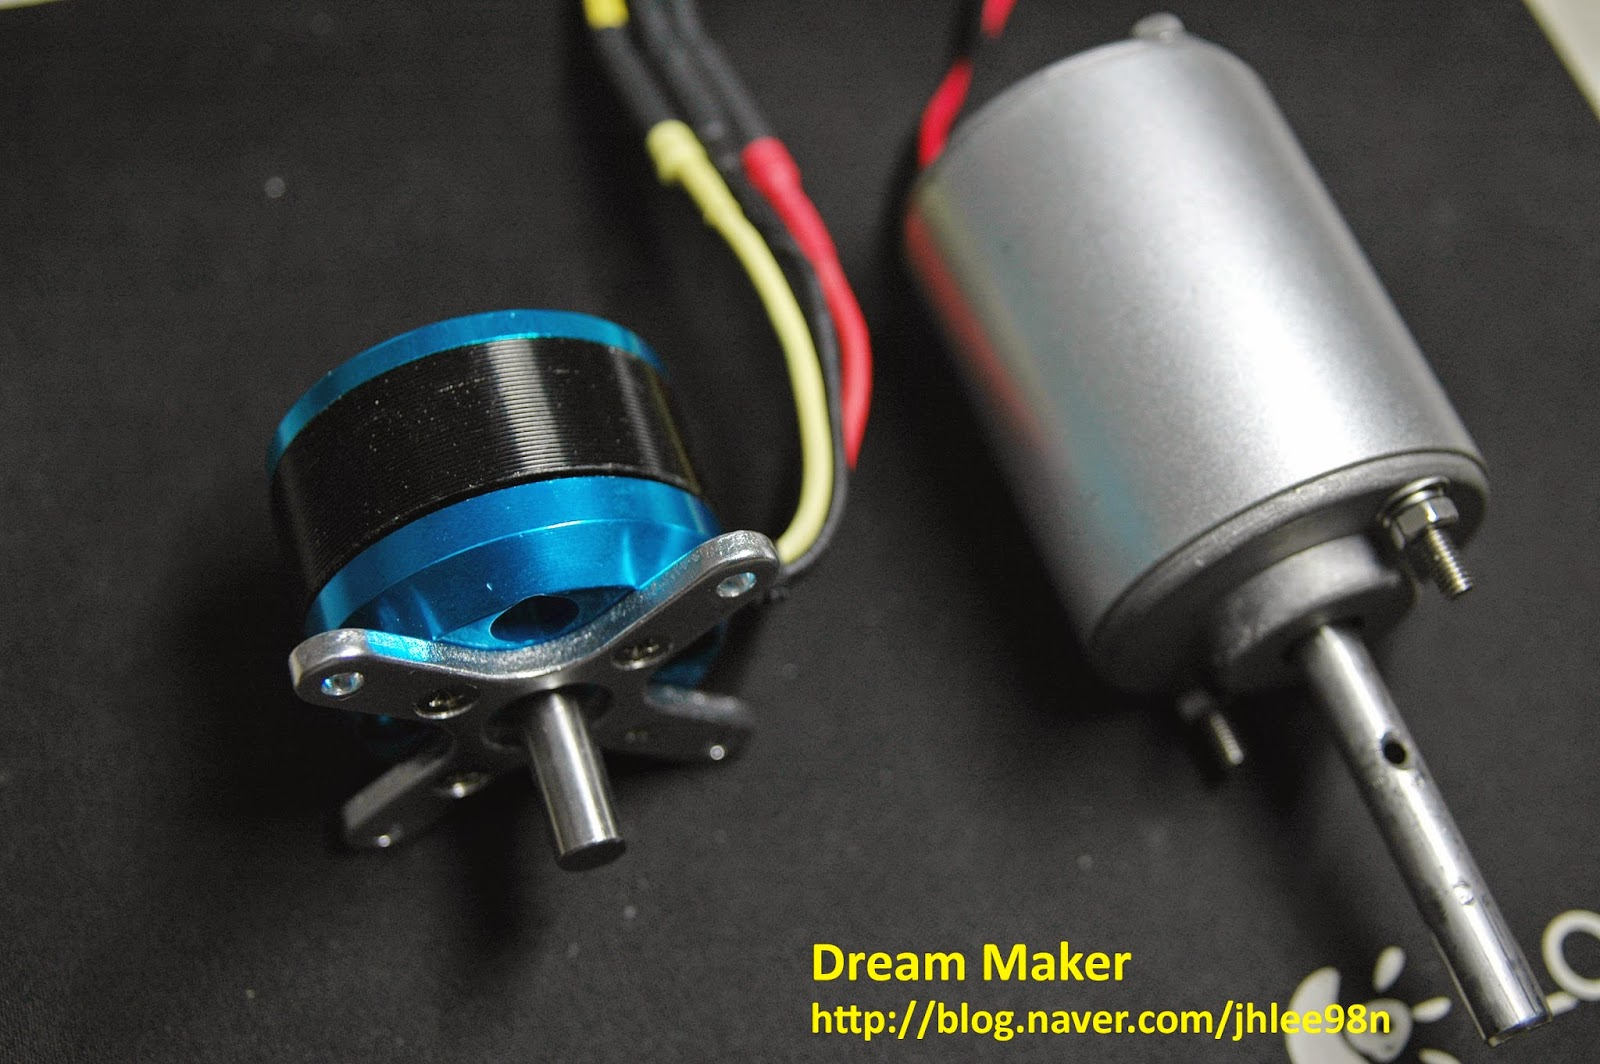 Purchasing Bldc Motor For Micro Cnc Spindle Dream Maker Machine Wiring Schematic As You Know Rc Motors Outer Diameter Is Simillar Than Dc However Length The Half Of So I Expect Weight Adventage